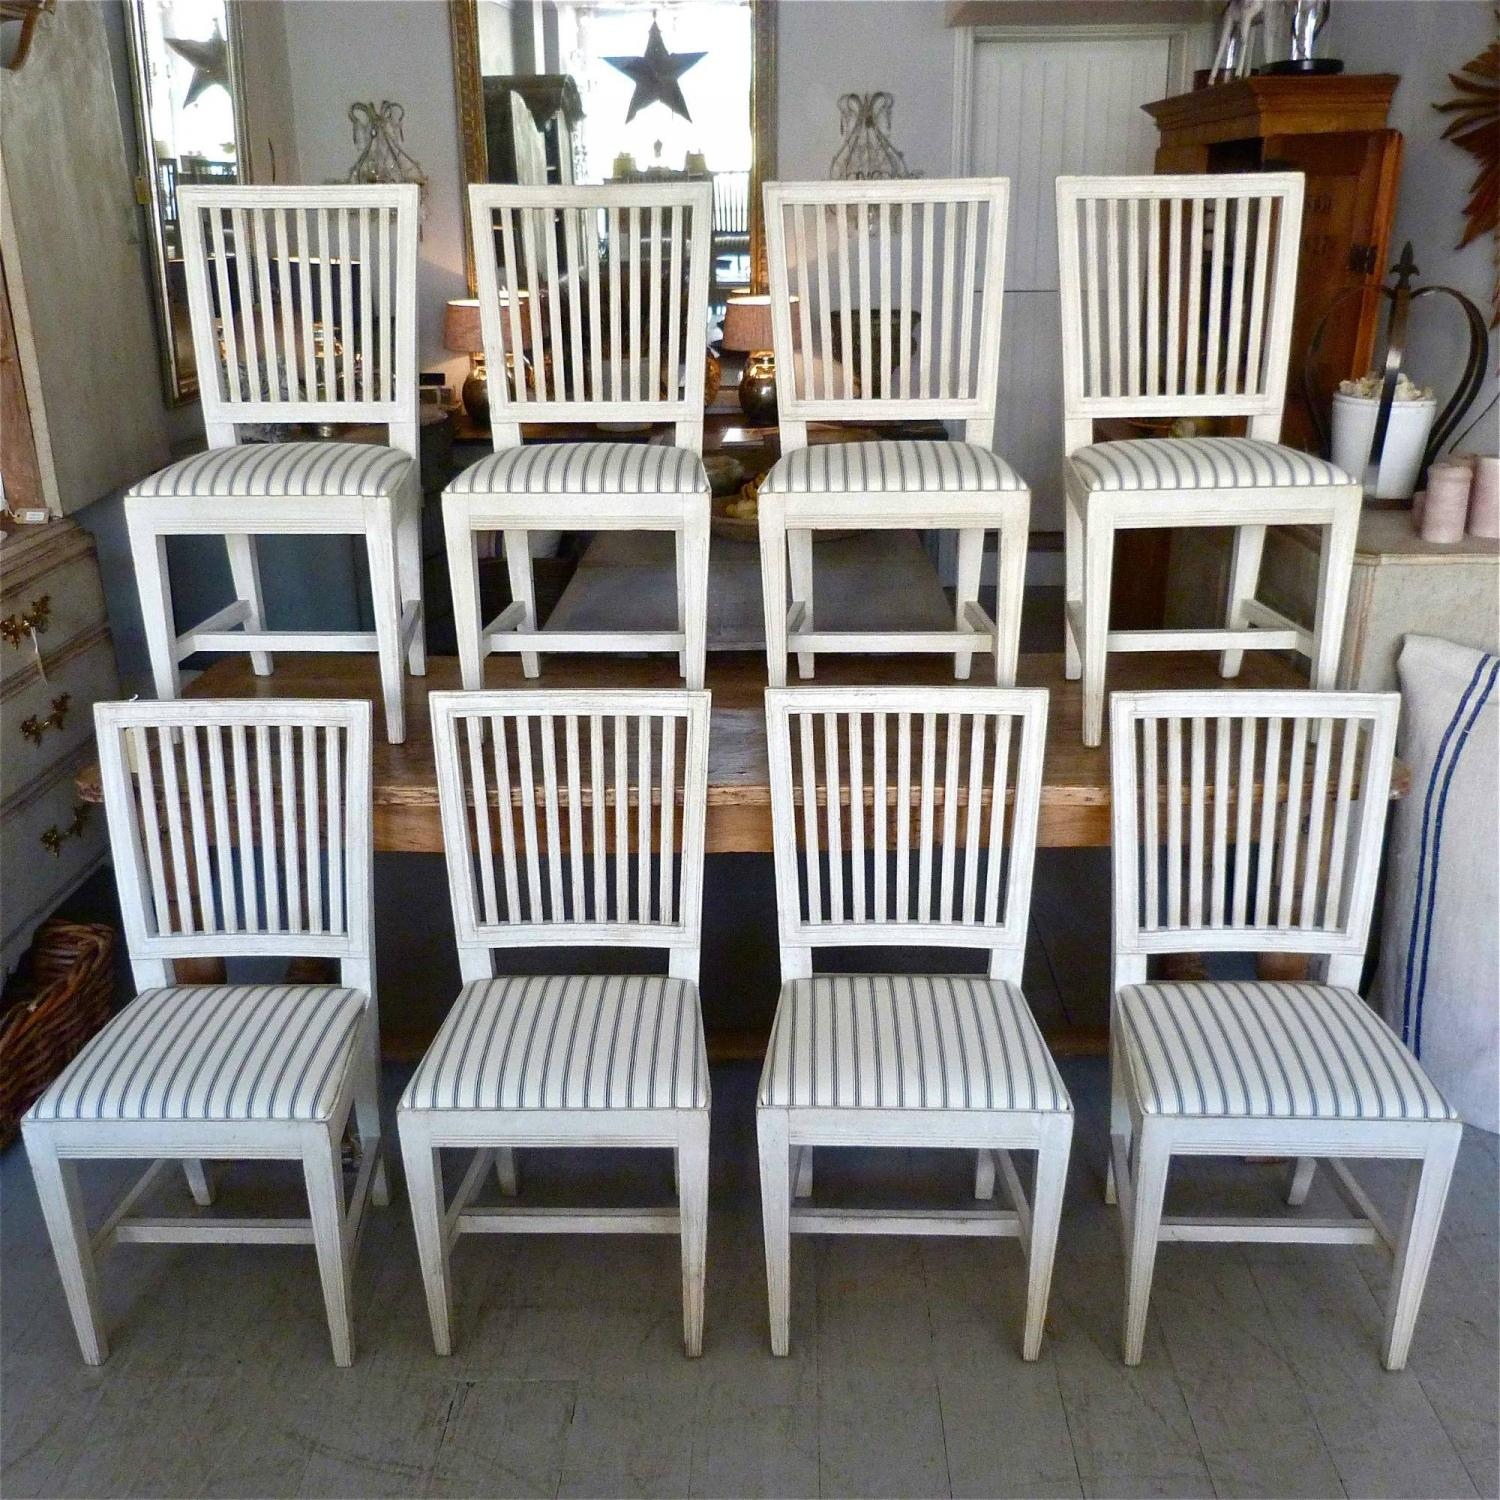 SET OF 8 ANTIQUE SWEDISH GUSTAVIAN STYLE DINING CHAIRS